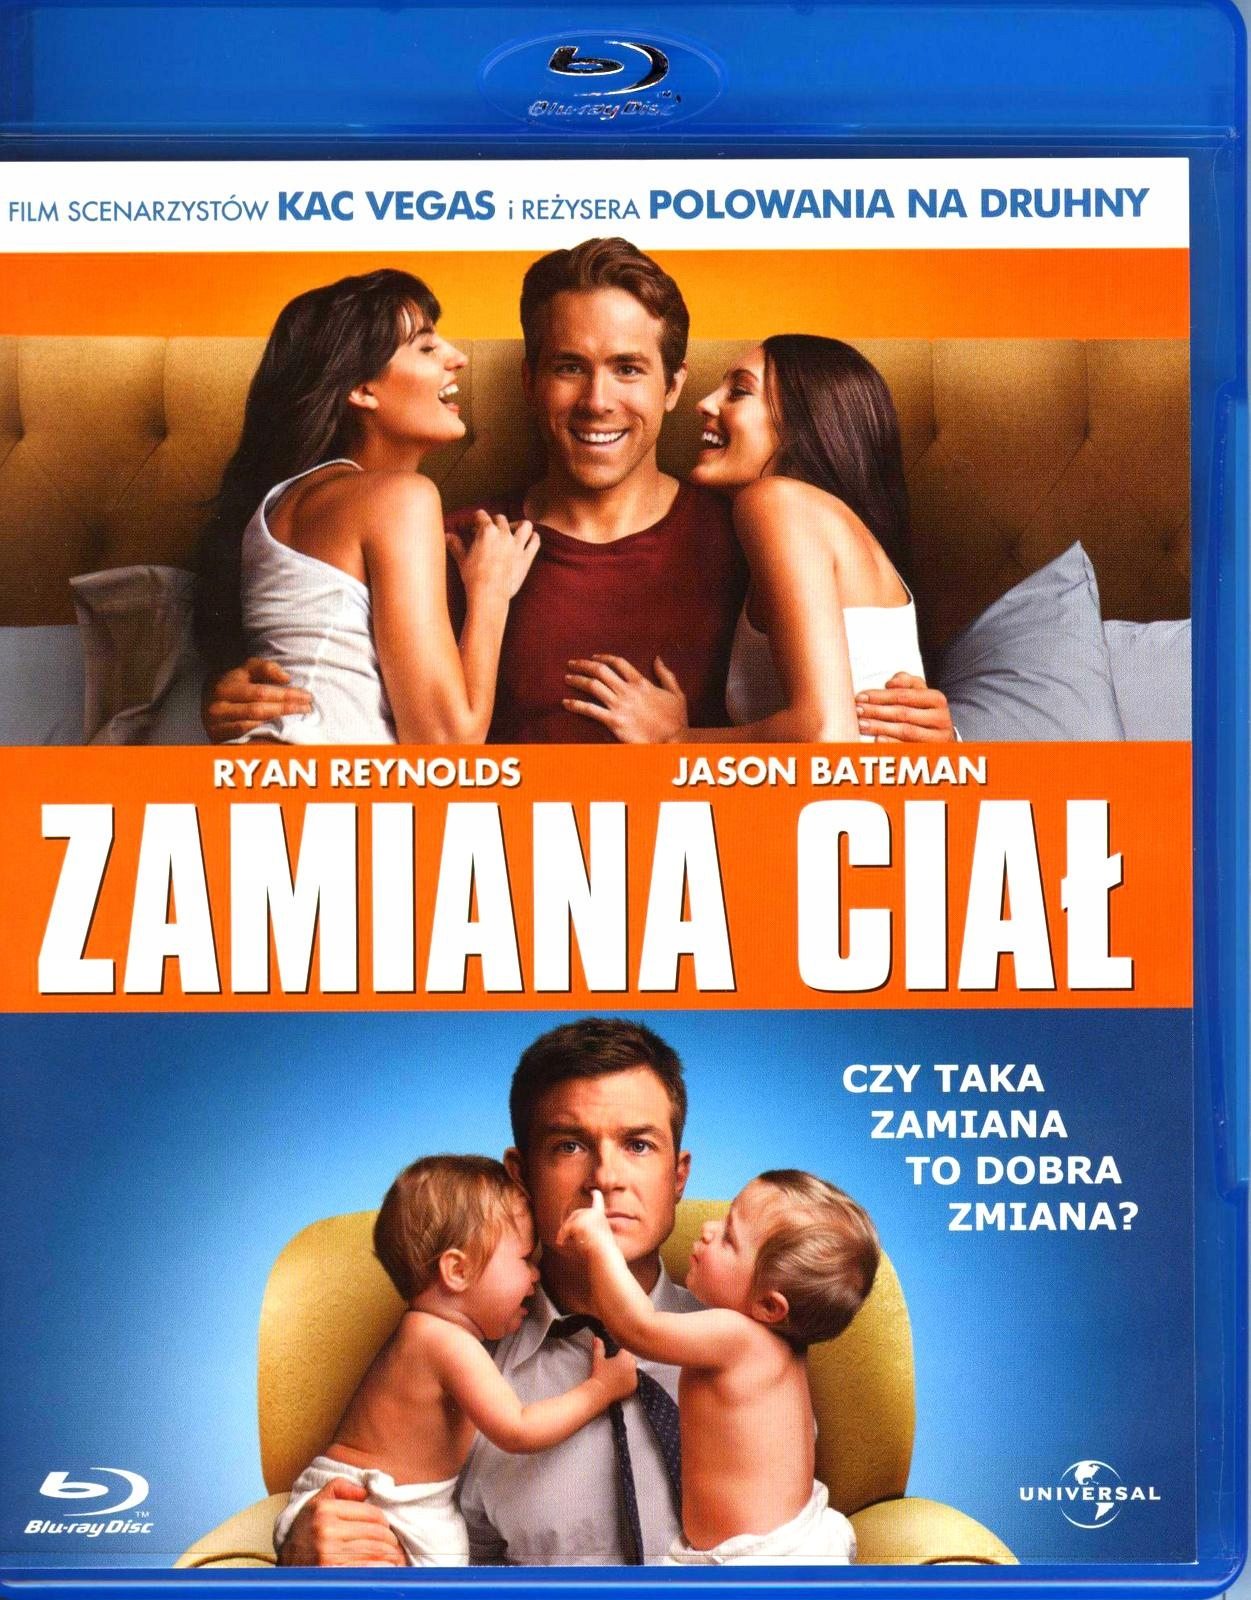 ZAMIANA CIAŁ BLURAY